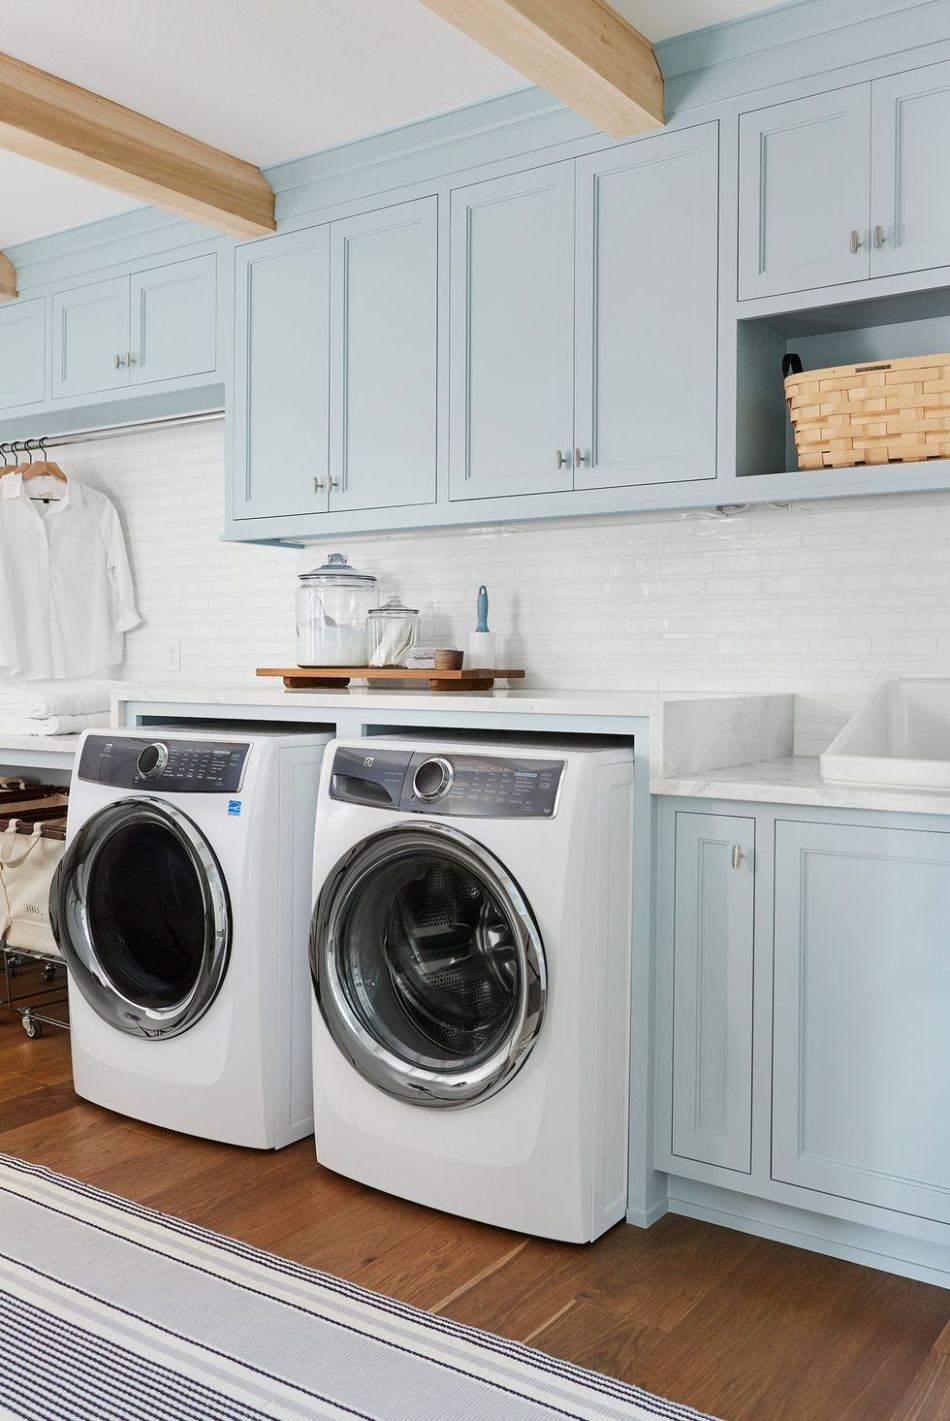 11 Small Laundry Room Ideas - Small Laundry Room Storage Tips - small laundry room ideas top loading washer